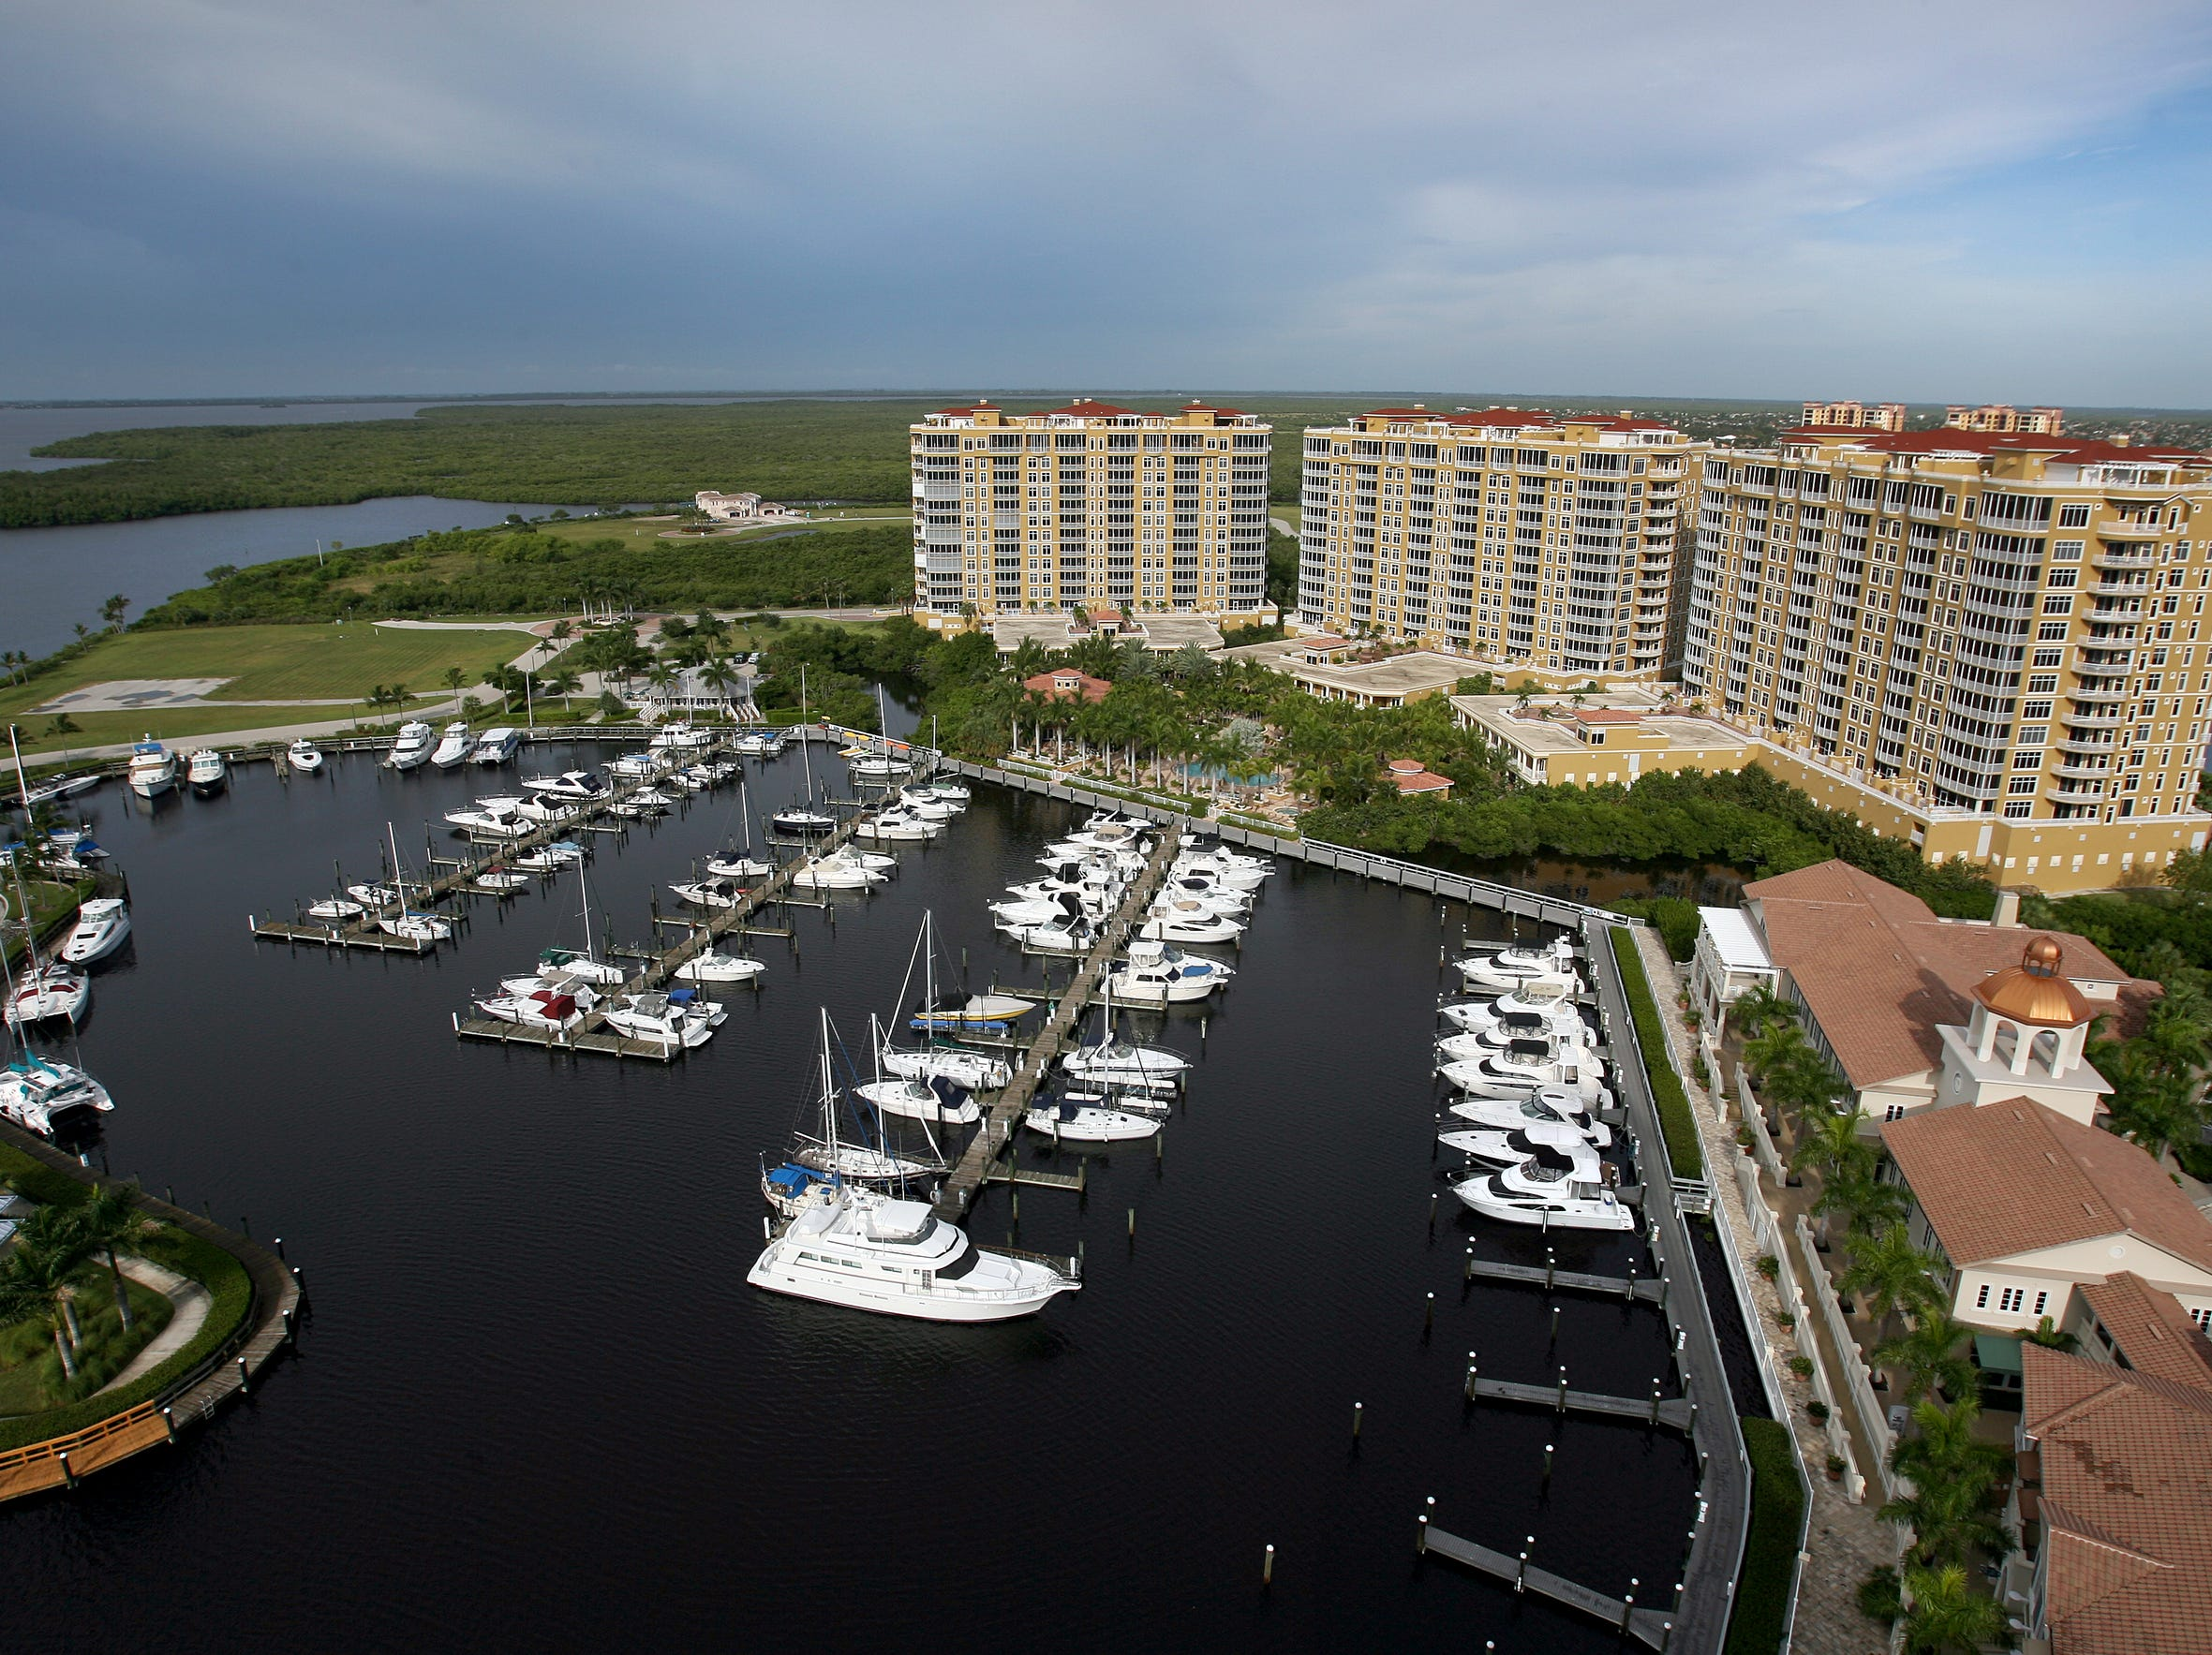 A penthouse view from The Resort at Marina Village luxury hotel of the Tarpon Point Marina basin, shops and Tarpon Landings, a trio of high-rise condominiums that recovered after the overall development became part of one of the biggest foreclosures in Southwest Florida history.